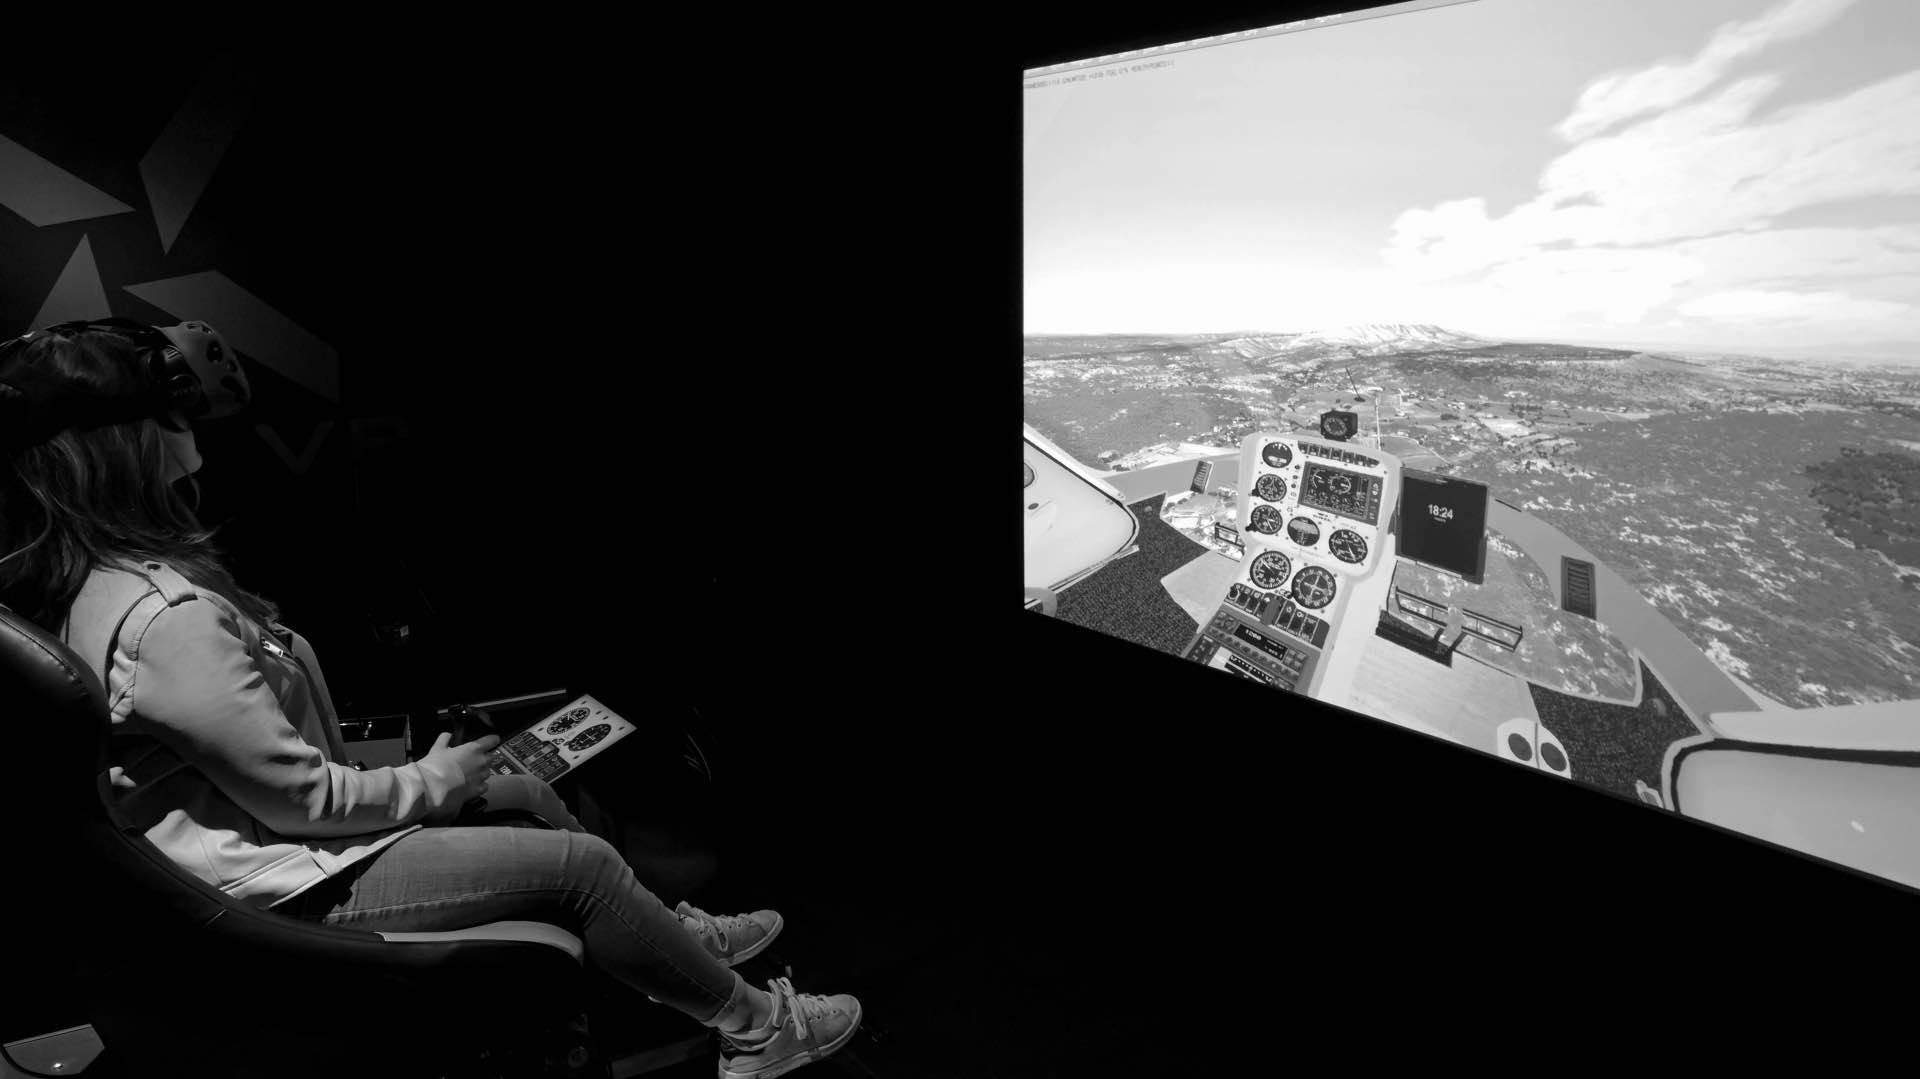 Salle simulation helicoptere realite virtuelle helico